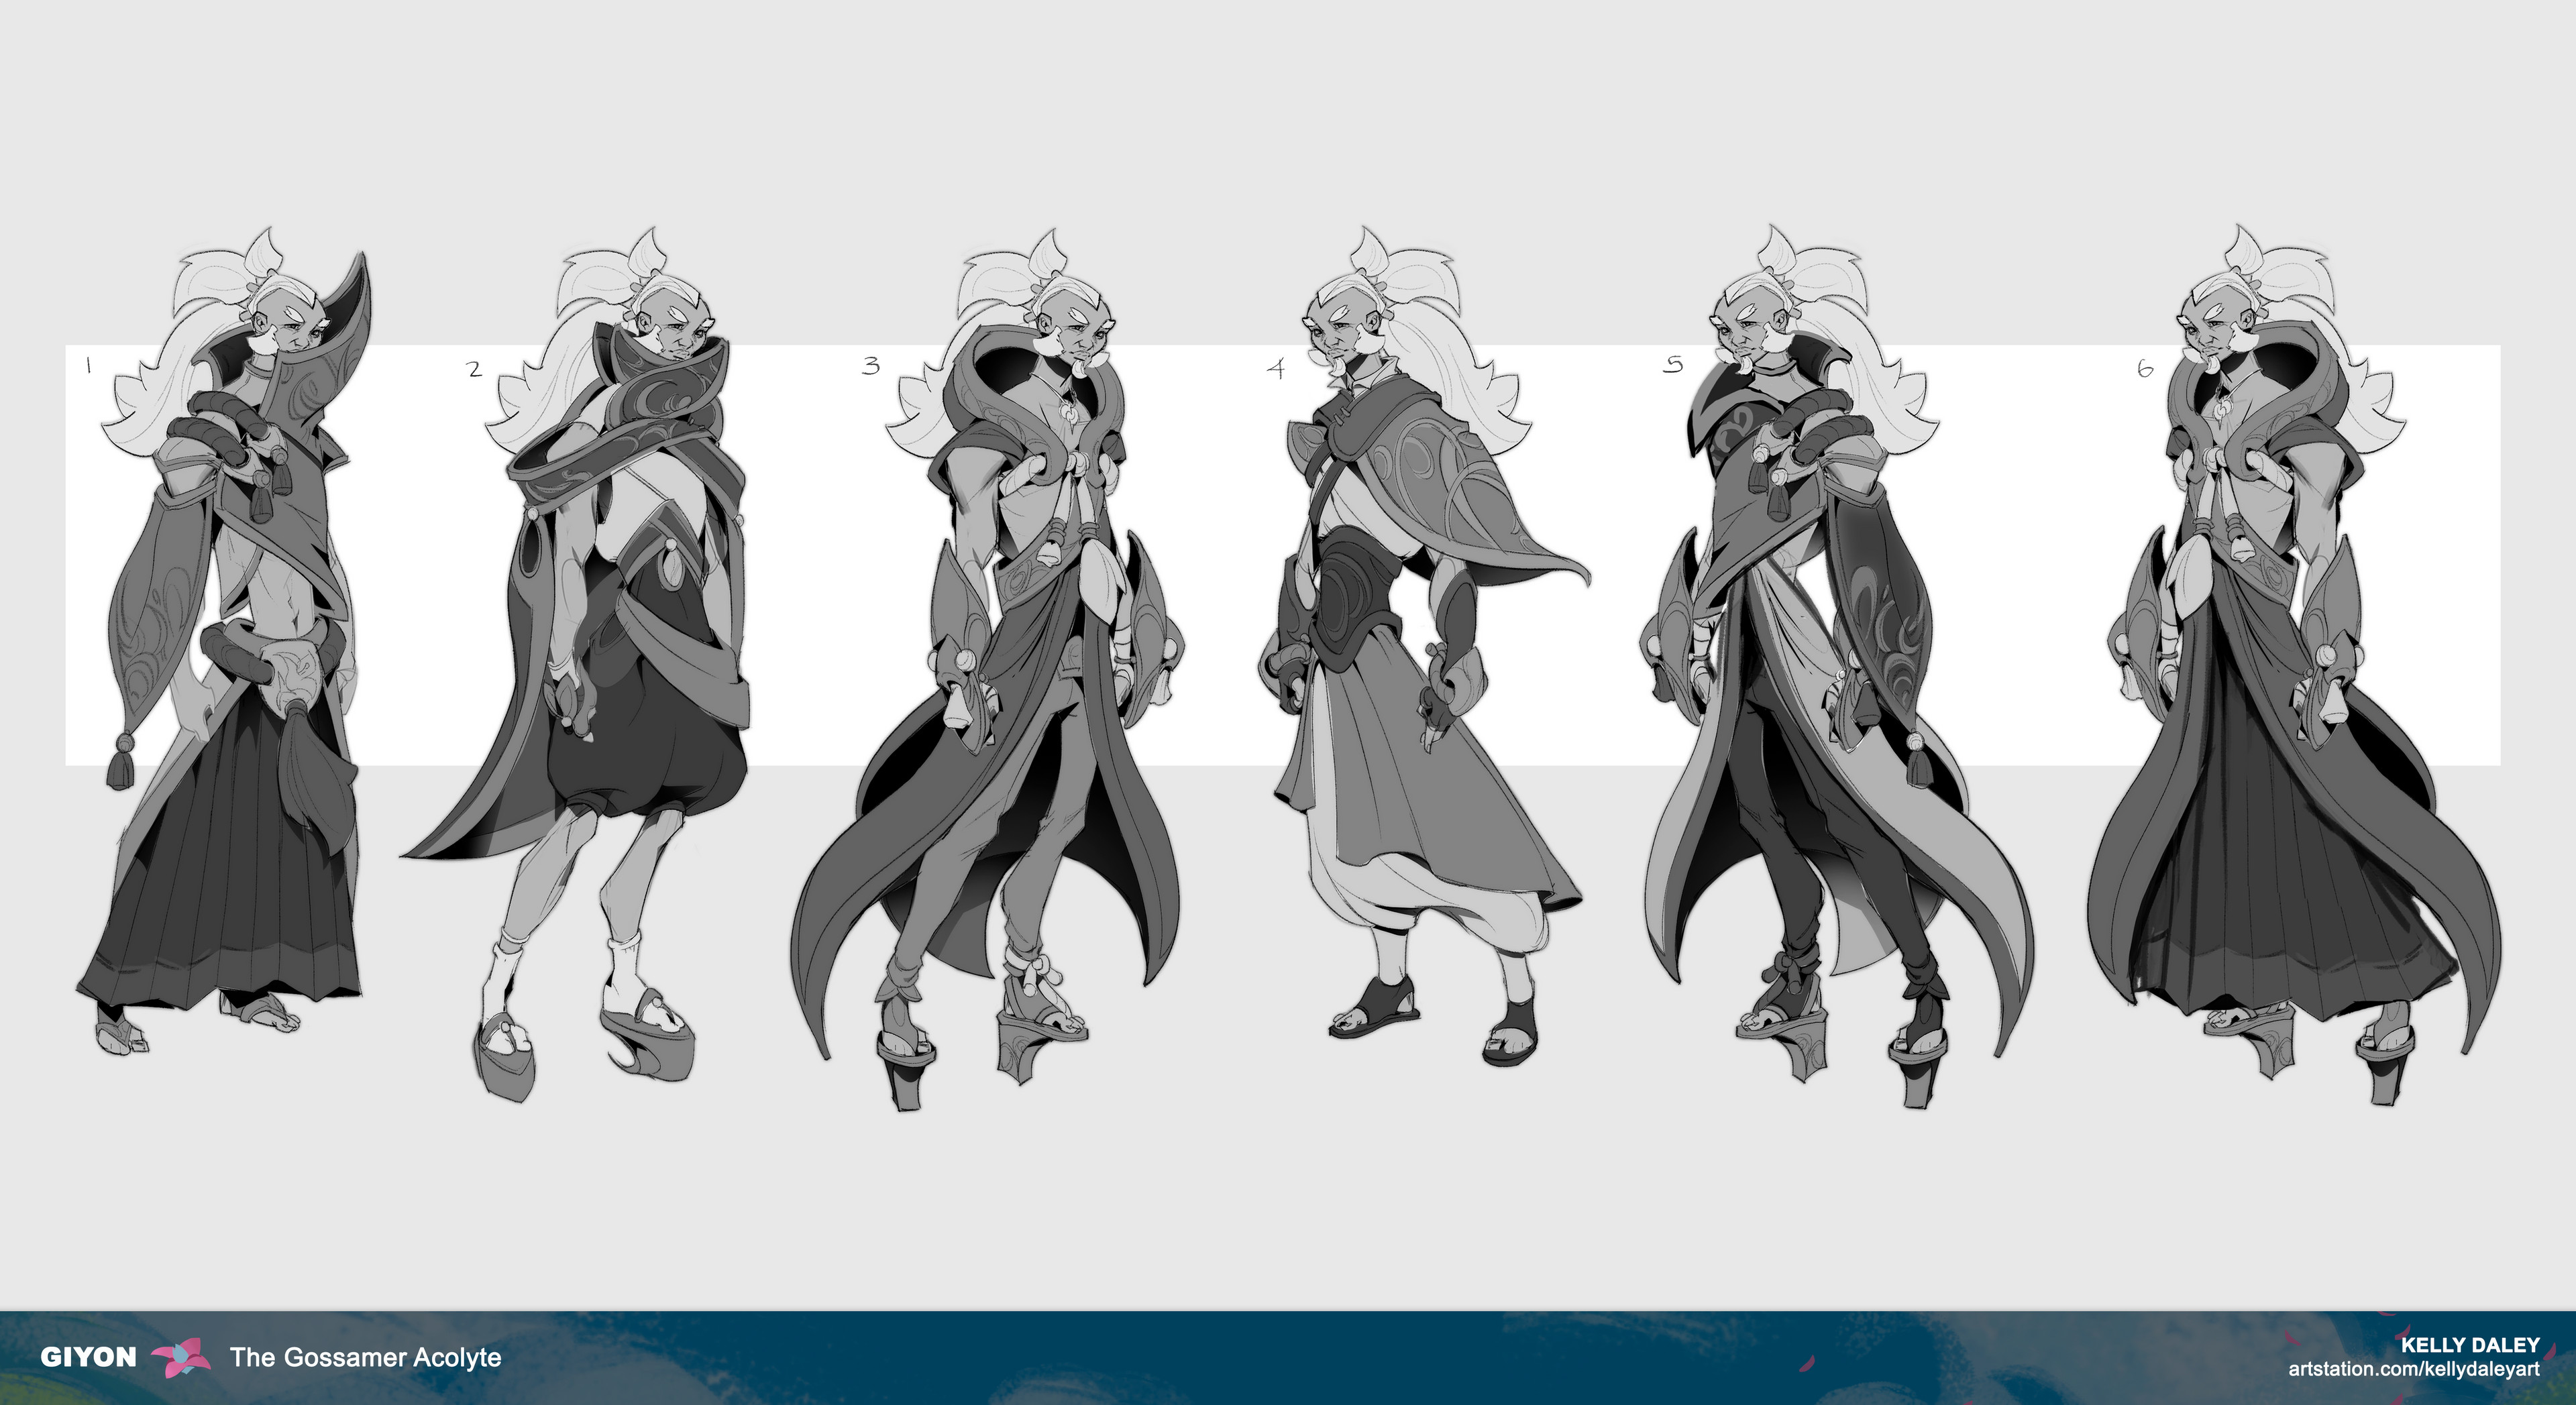 Costume explorations. Although I kept my motifs in mind, I wasn't hitting the Ionian concept just yet. After the extensive critique, I realized that my ideas were leaning too fantasy. I needed to reevaluate my writing prompt to push these further.